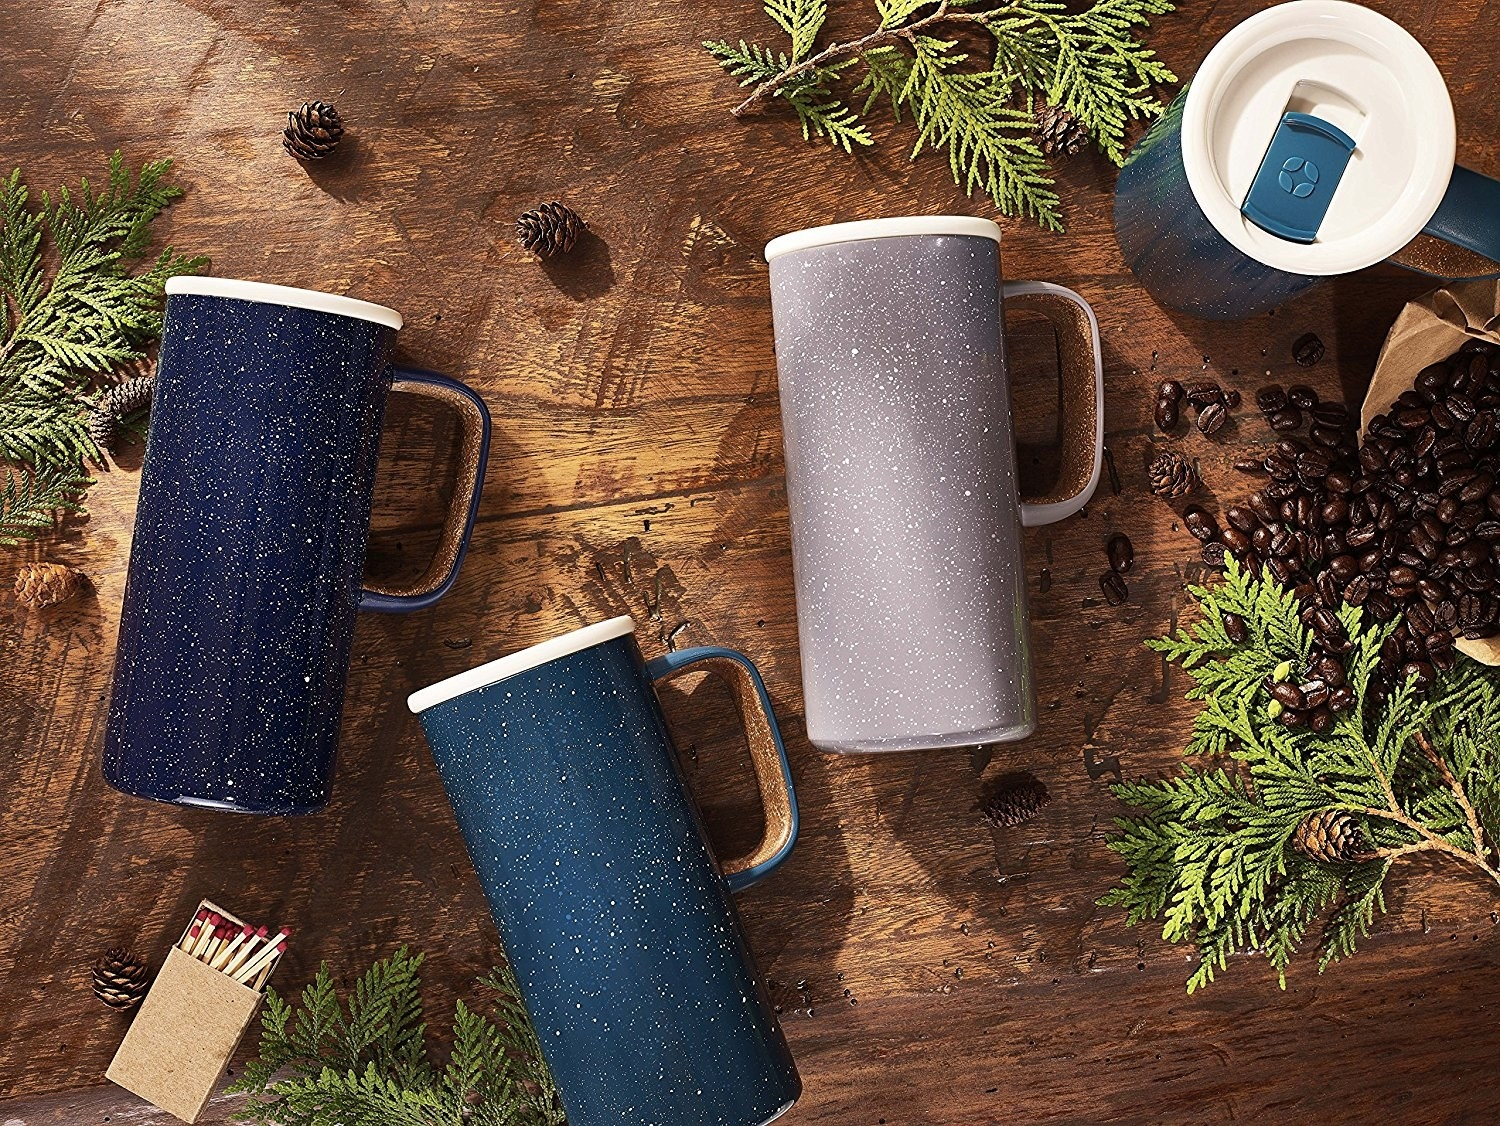 three tall ceramic travel mugs with handles and lids